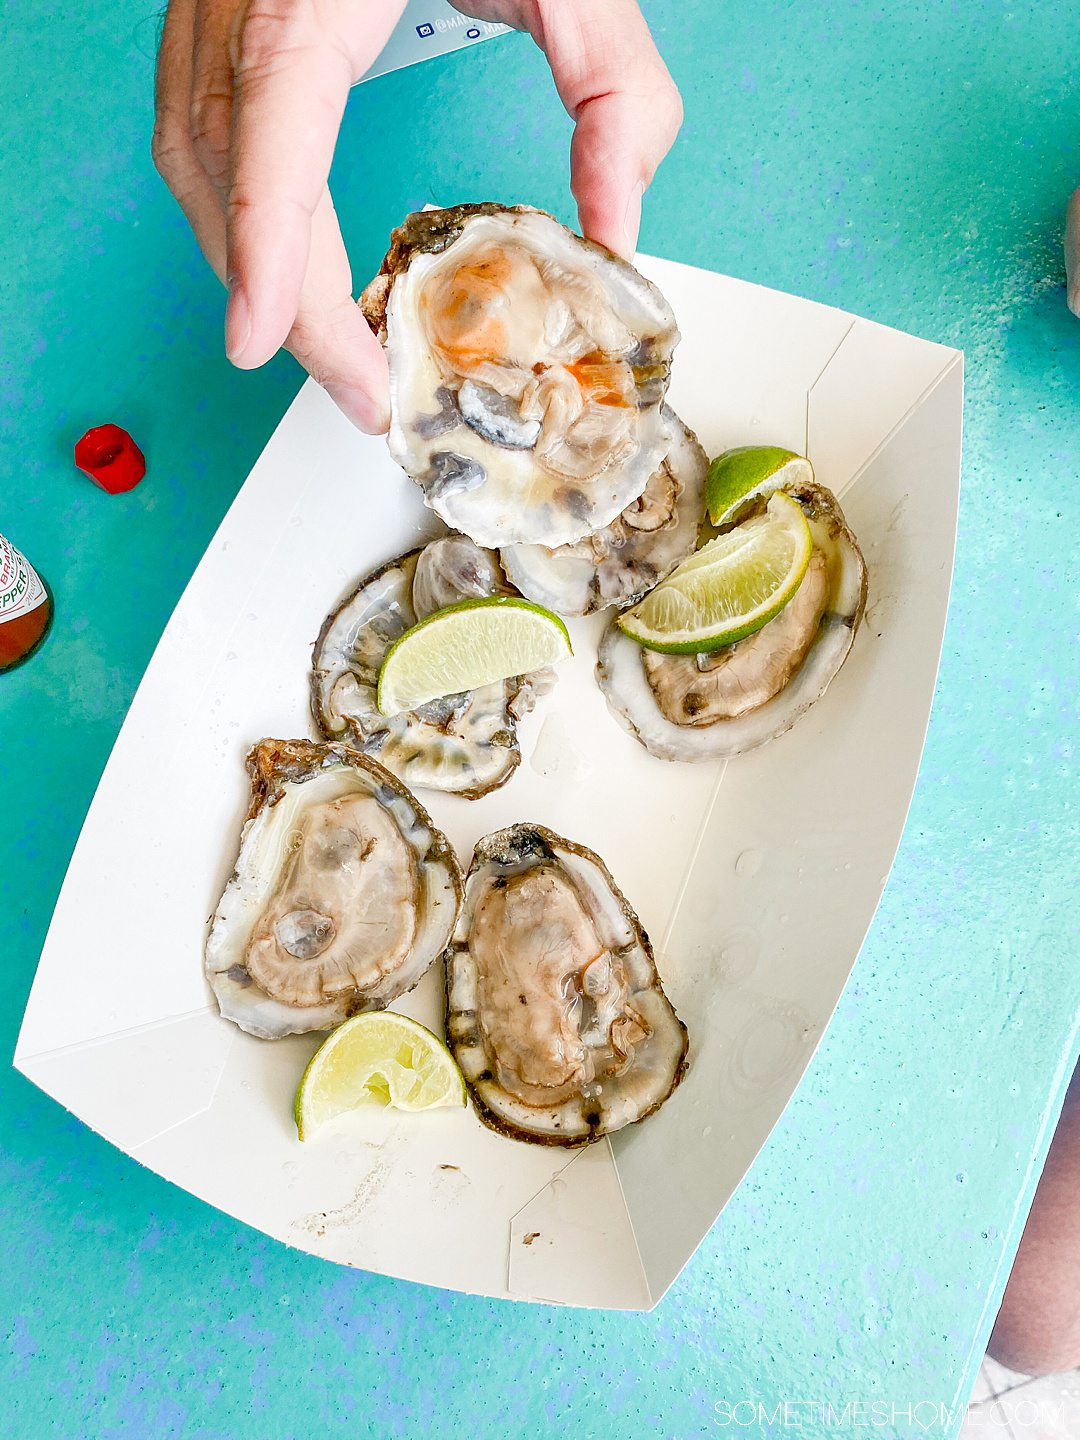 6 oysters with a paper tray, and a man holding one of them.